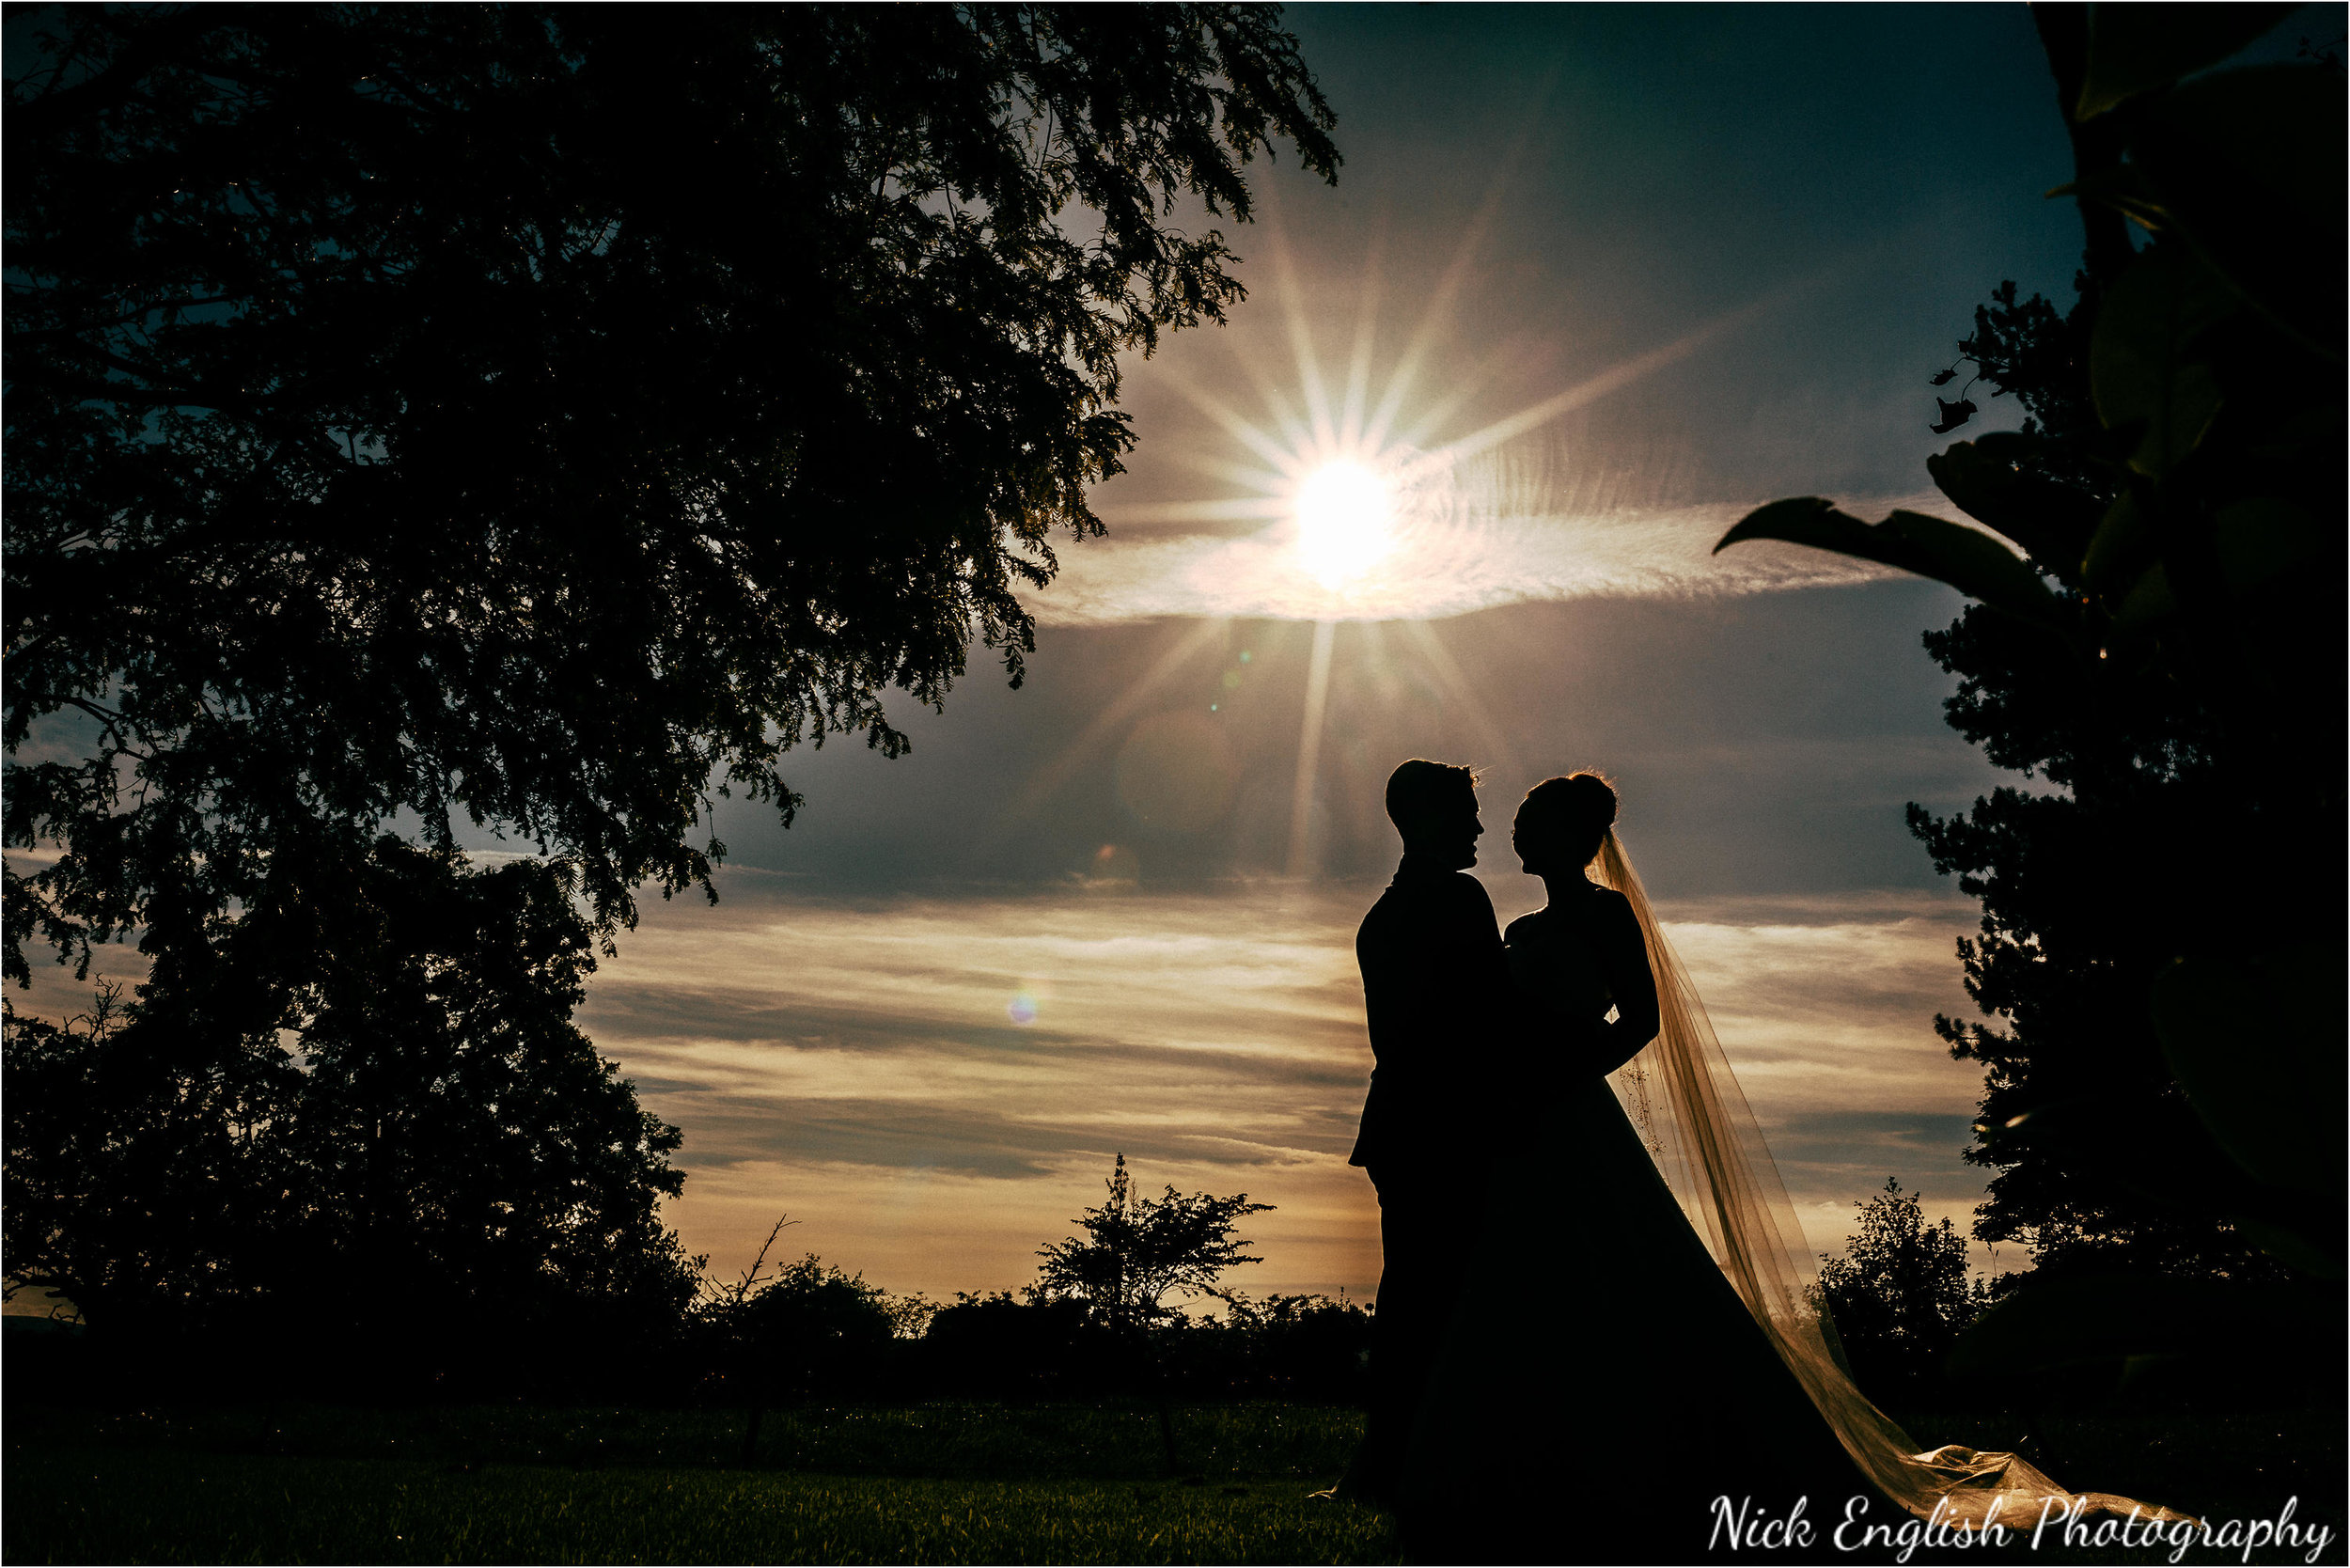 Eaves_Hall_Wedding_Photographs_Nick_English_Photography-169.jpg